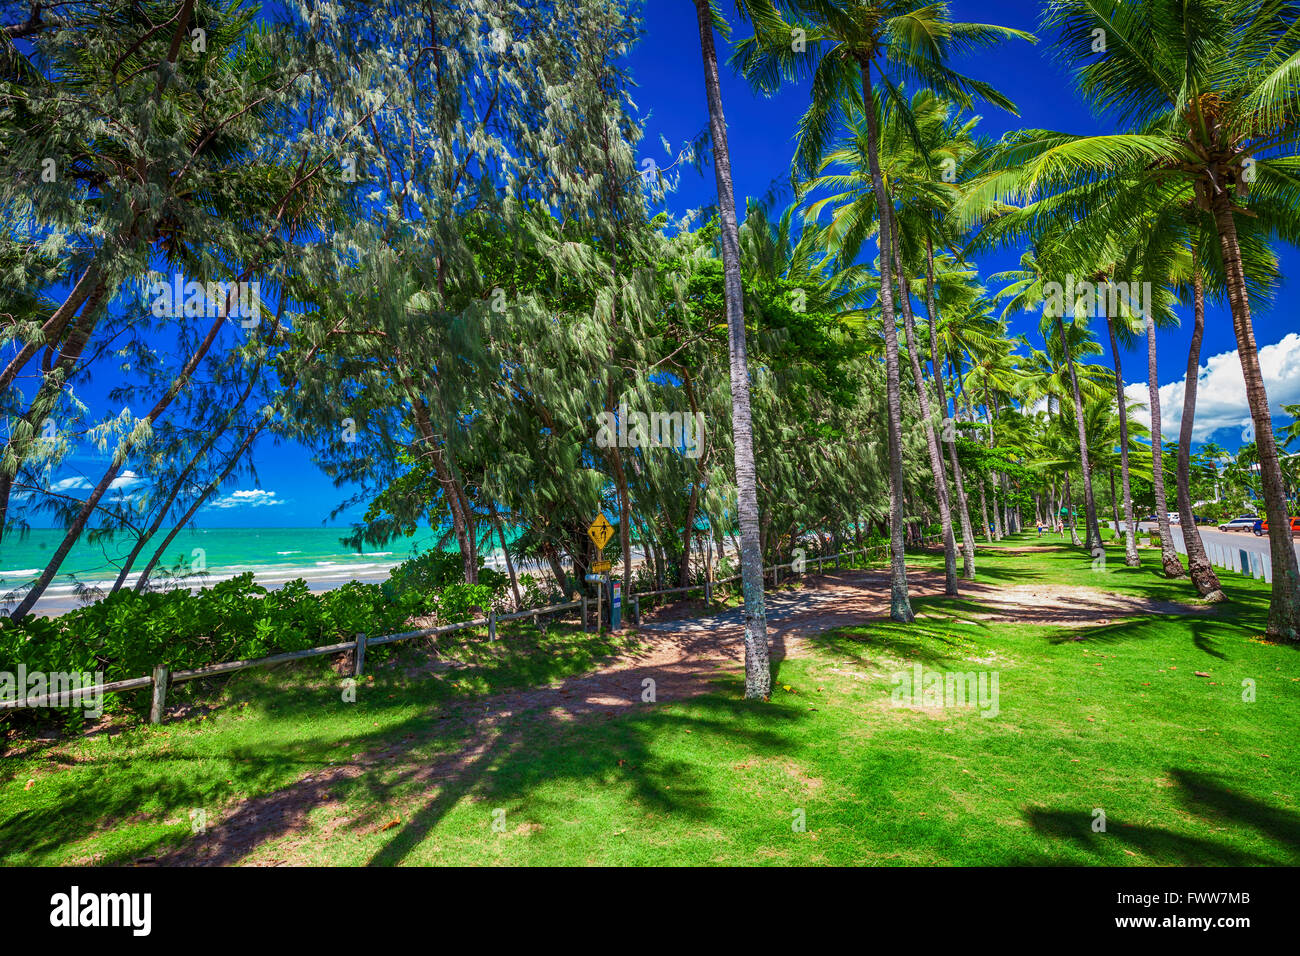 Port Douglas four mile beach and ocean on sunny day, north Queensland, Australia - Stock Image